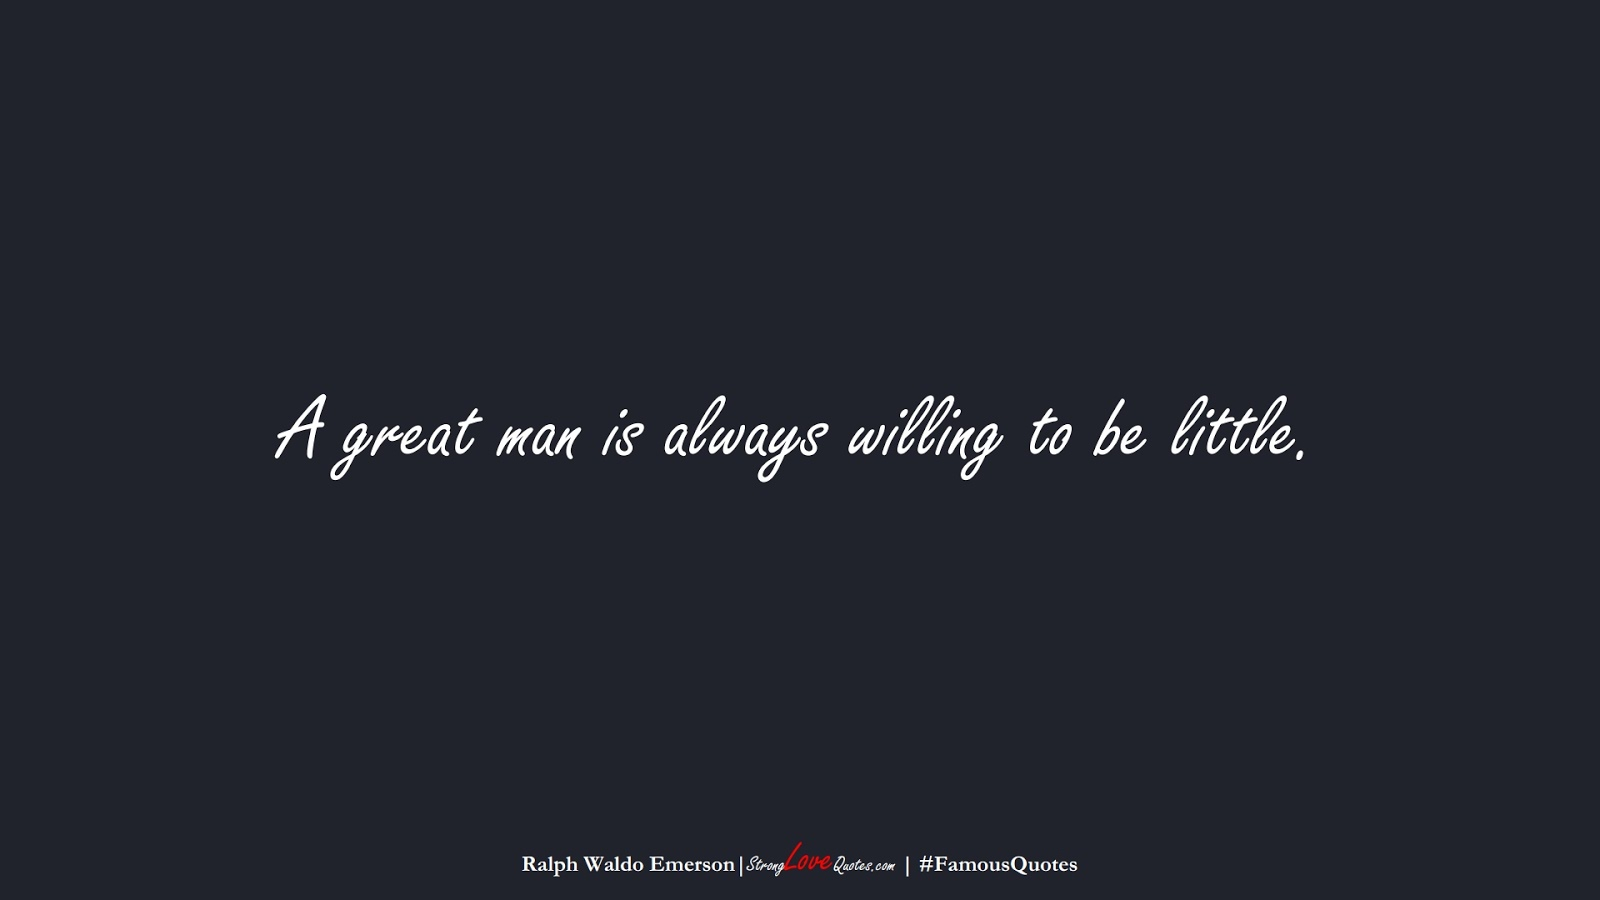 A great man is always willing to be little. (Ralph Waldo Emerson);  #FamousQuotes